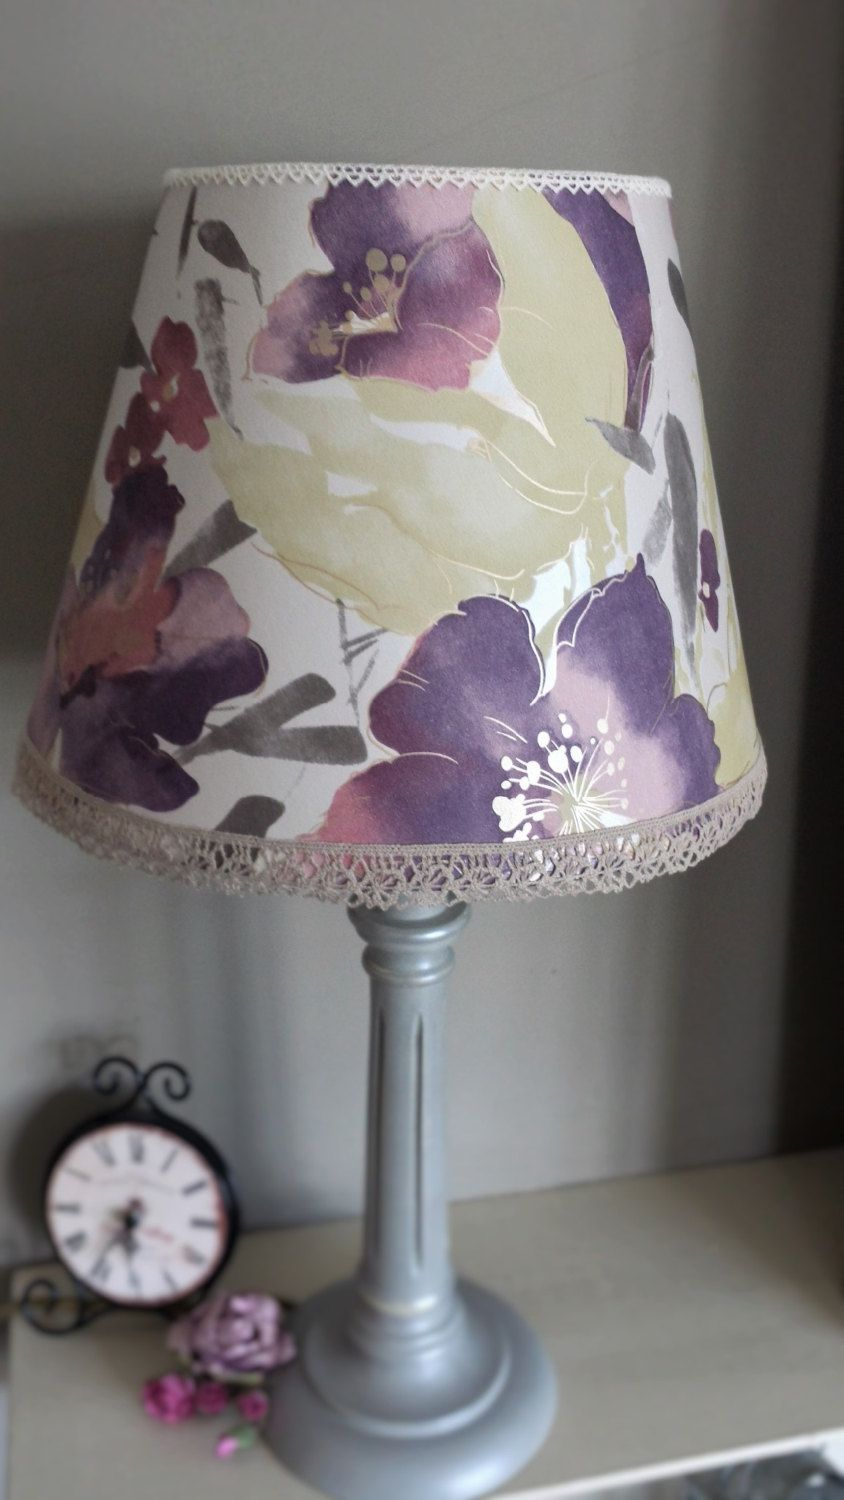 Lamp Shade Purple Floral Shade Watercolour Style Flowers With Metallic Silver Background Table Lamp Shade Upcycled Lig Purple Lamp Shade Purple Lamp Lamp Shade